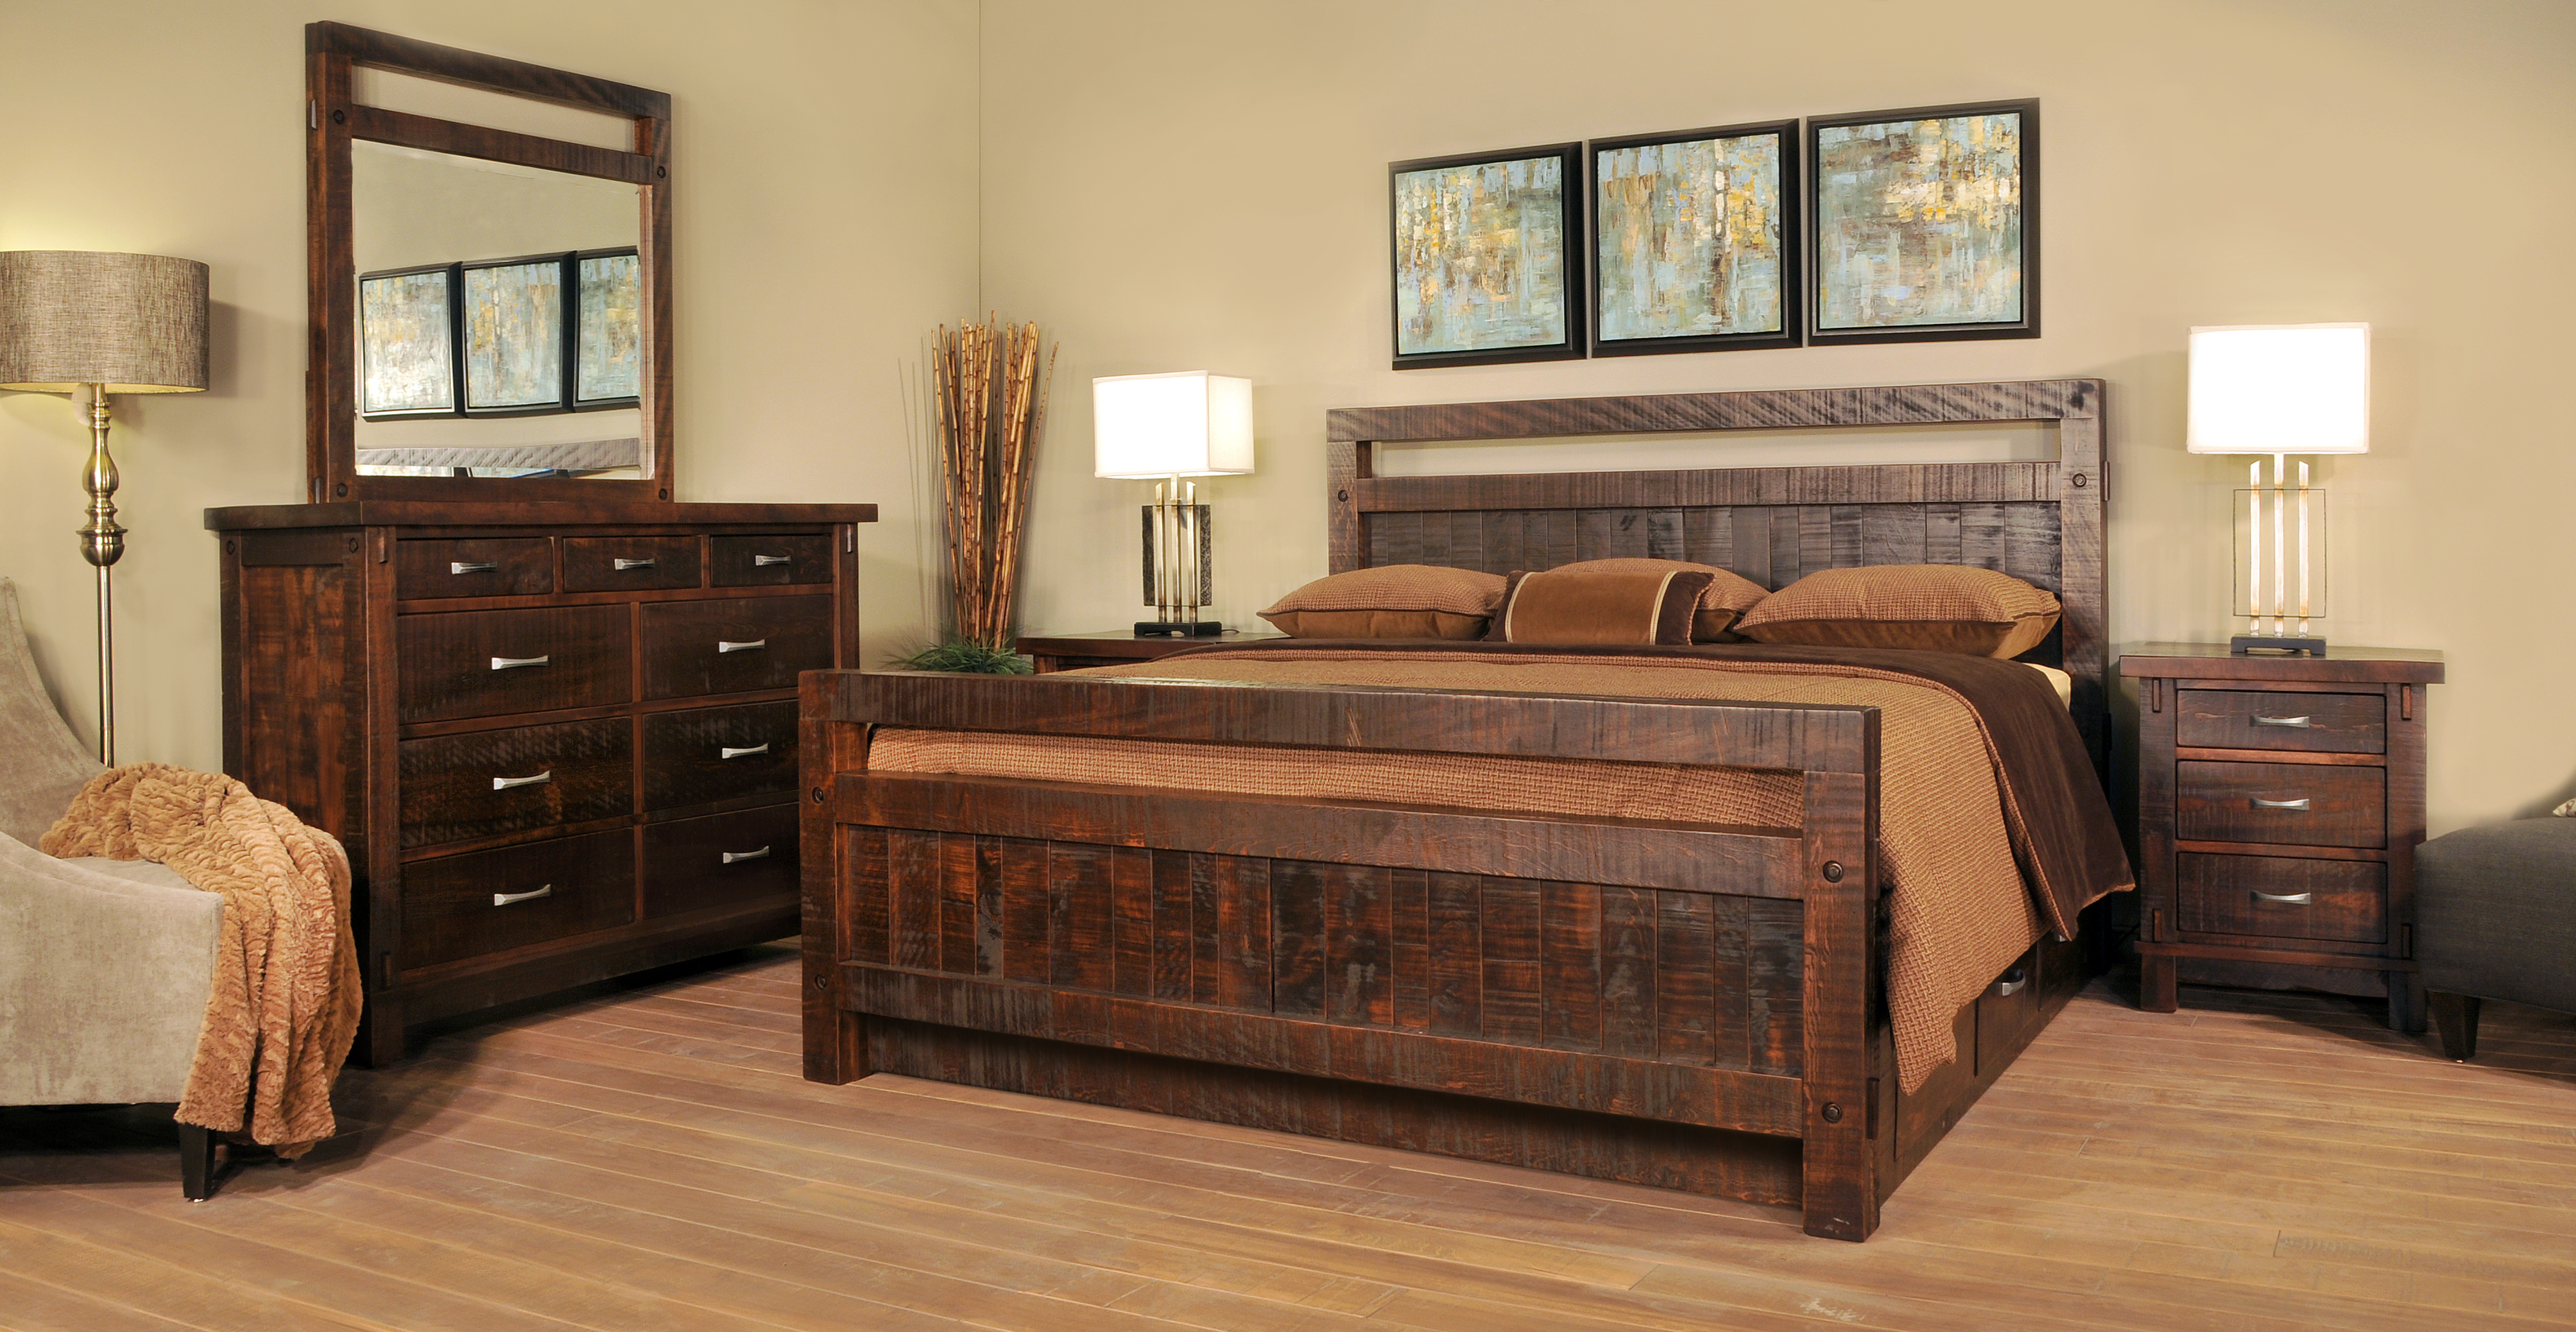 Timbers Collection Amish Oak Warehouse : Timber Bedroom Suite S from amishoakwarehouse.com size 4014 x 2076 jpeg 6079kB